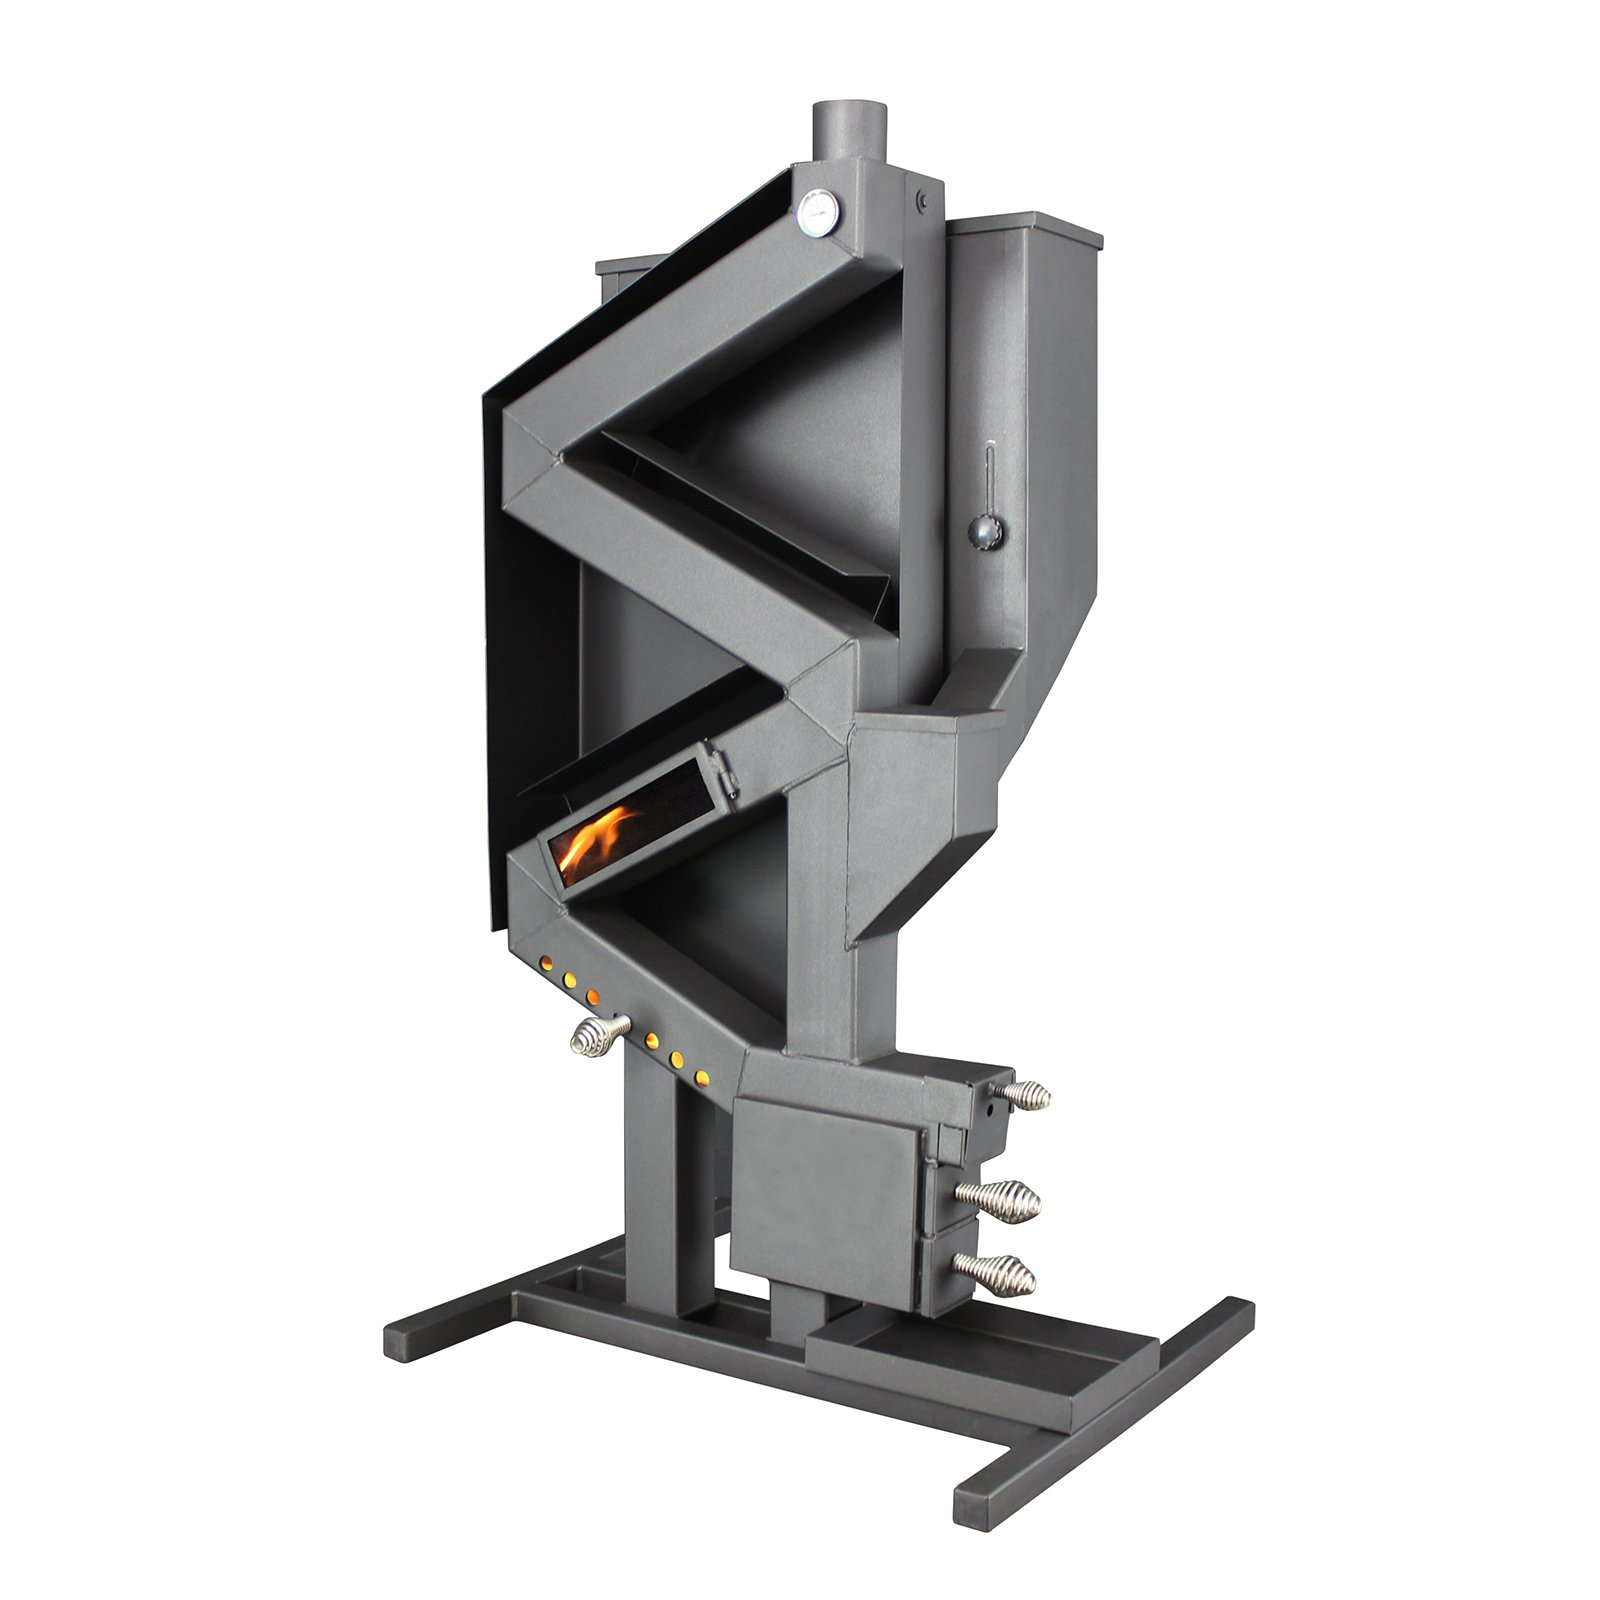 US Stove Wiseway Pellet Stove by US Stove Co